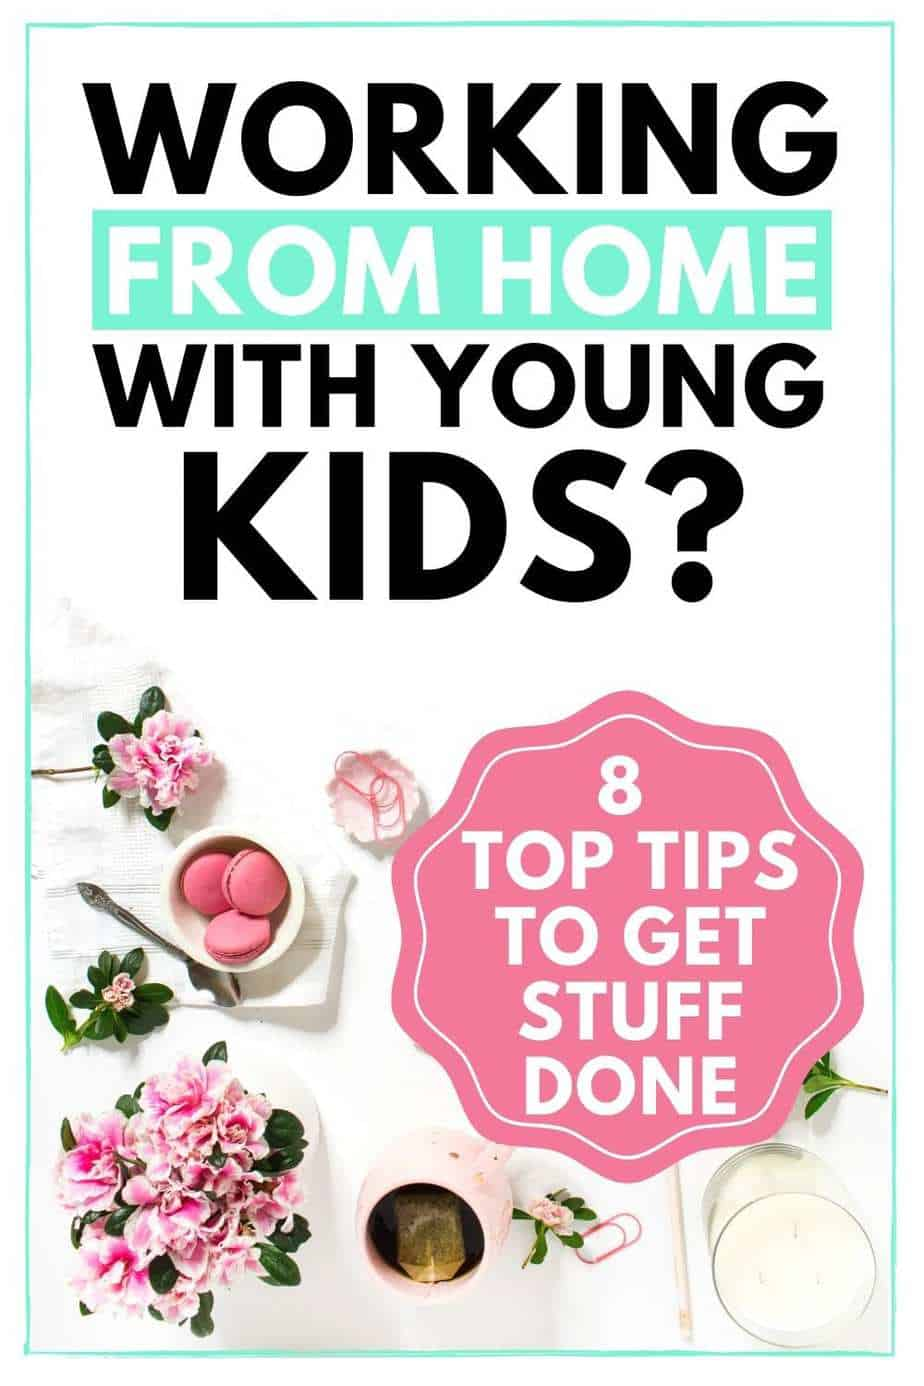 working from home with young kids? top tips to get stuff done